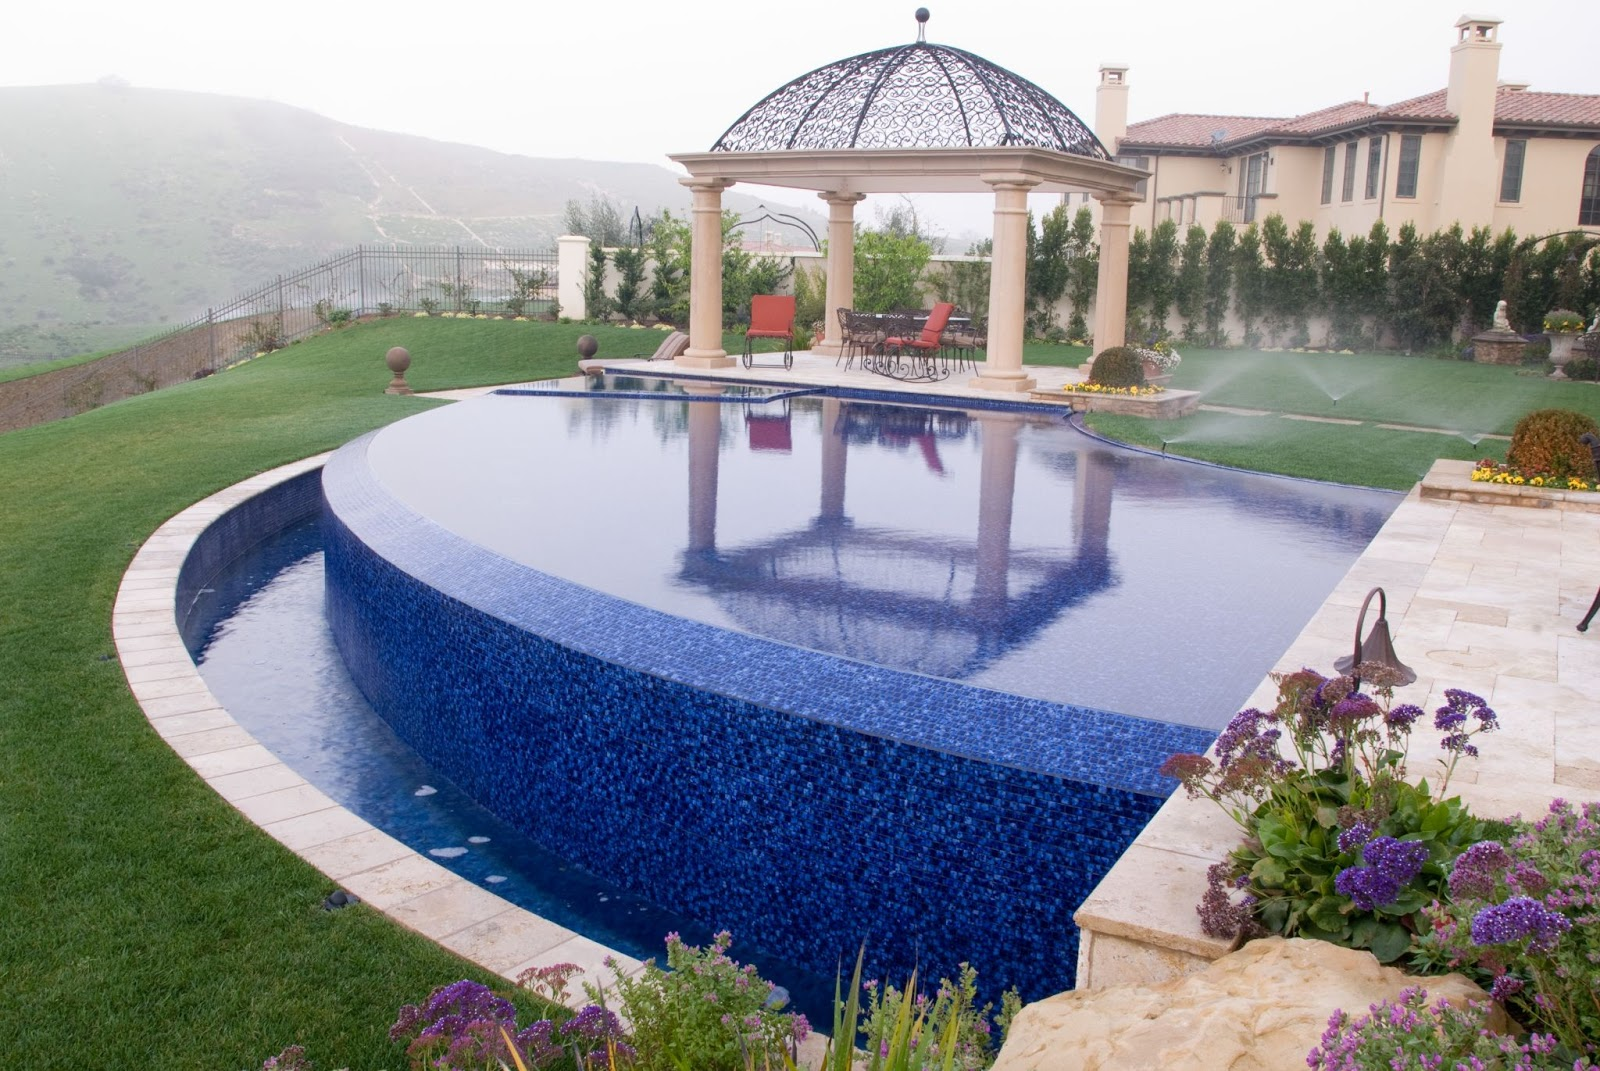 A swimming pool and a lawn uses more water